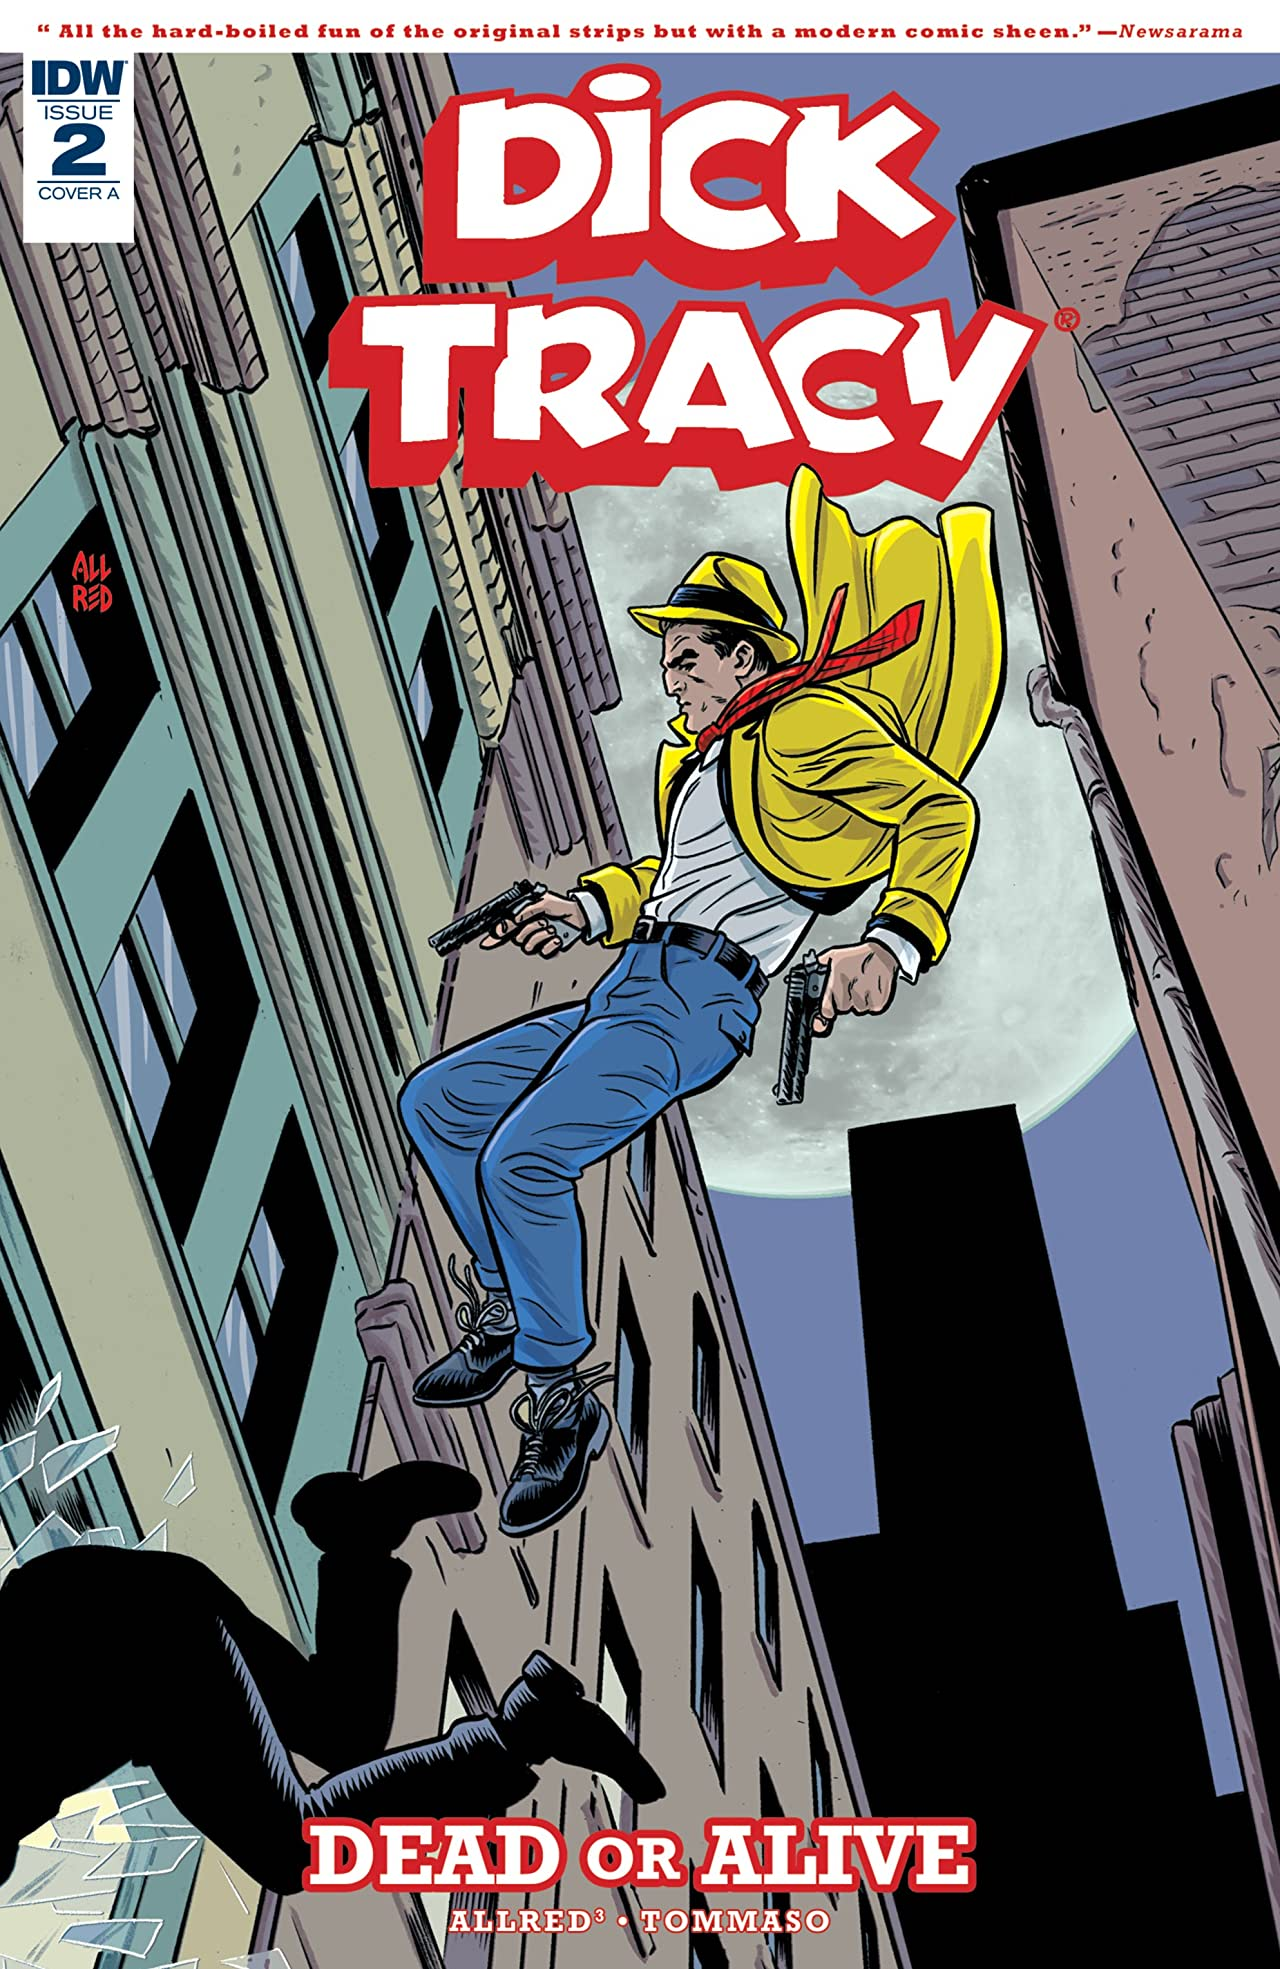 Dick Tracy: Dead or Alive #2 (of 4)